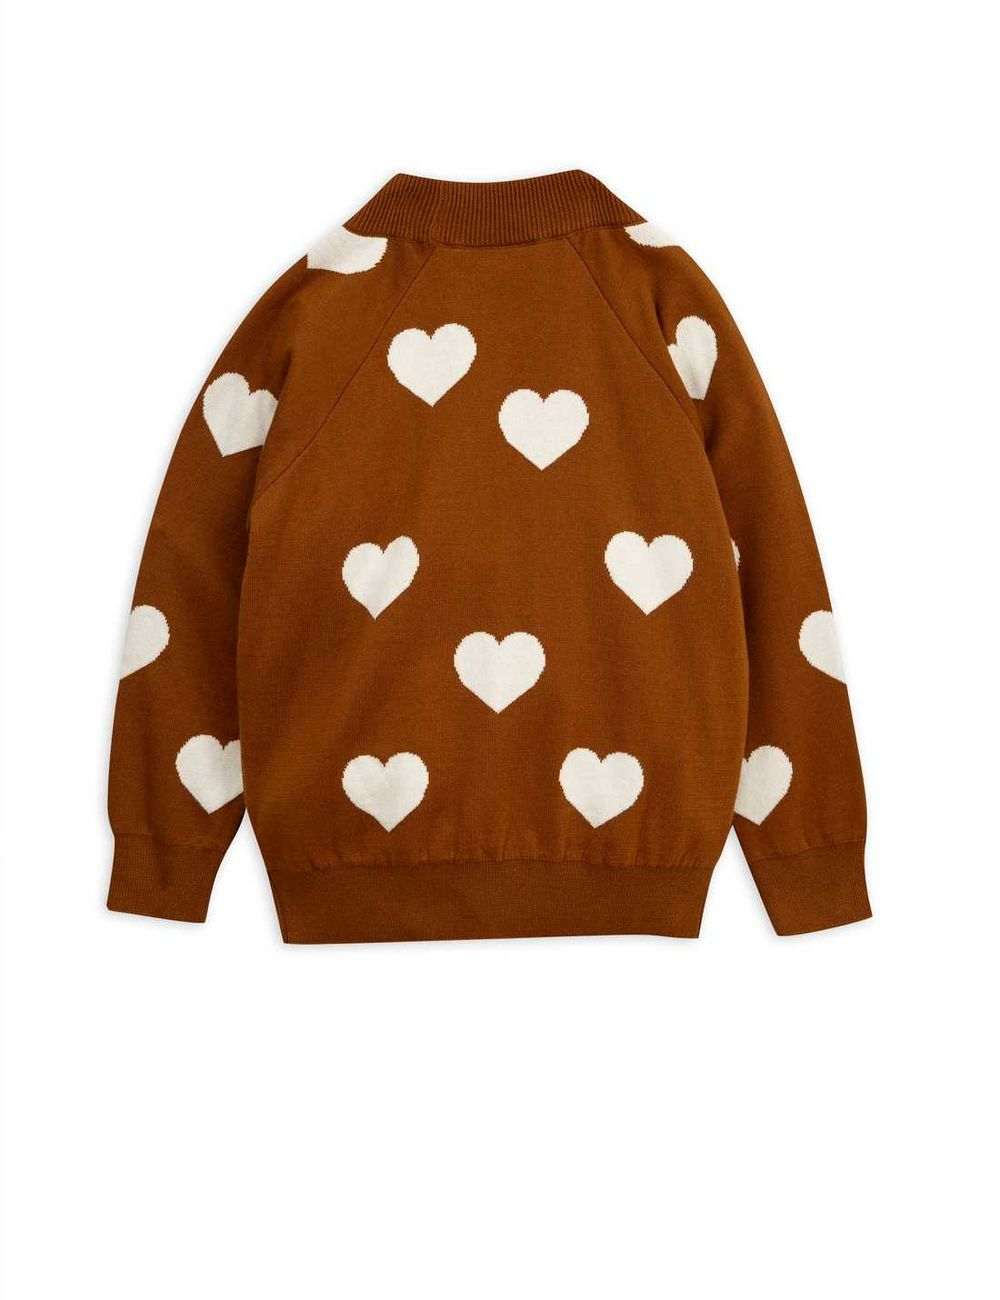 MINI RODINI KNITTED HEART SWEATER, BROWN